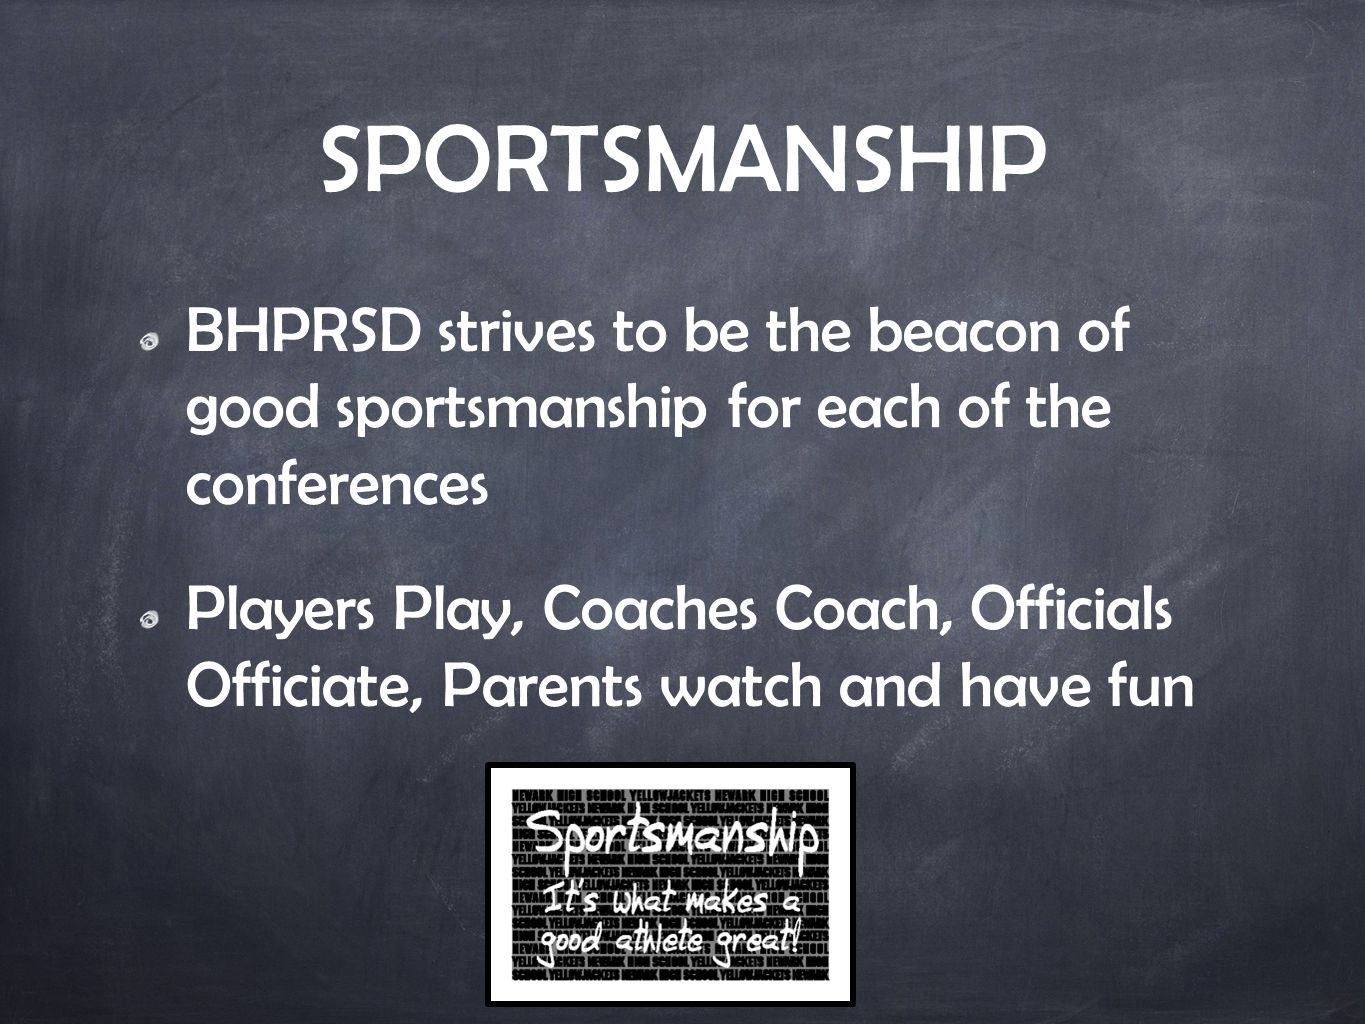 SPORTSMANSHIP BHPRSD strives to be the beacon of good sportsmanship for each of the conferences Players Play, Coaches Coach, Officials Officiate, Parents watch and have fun